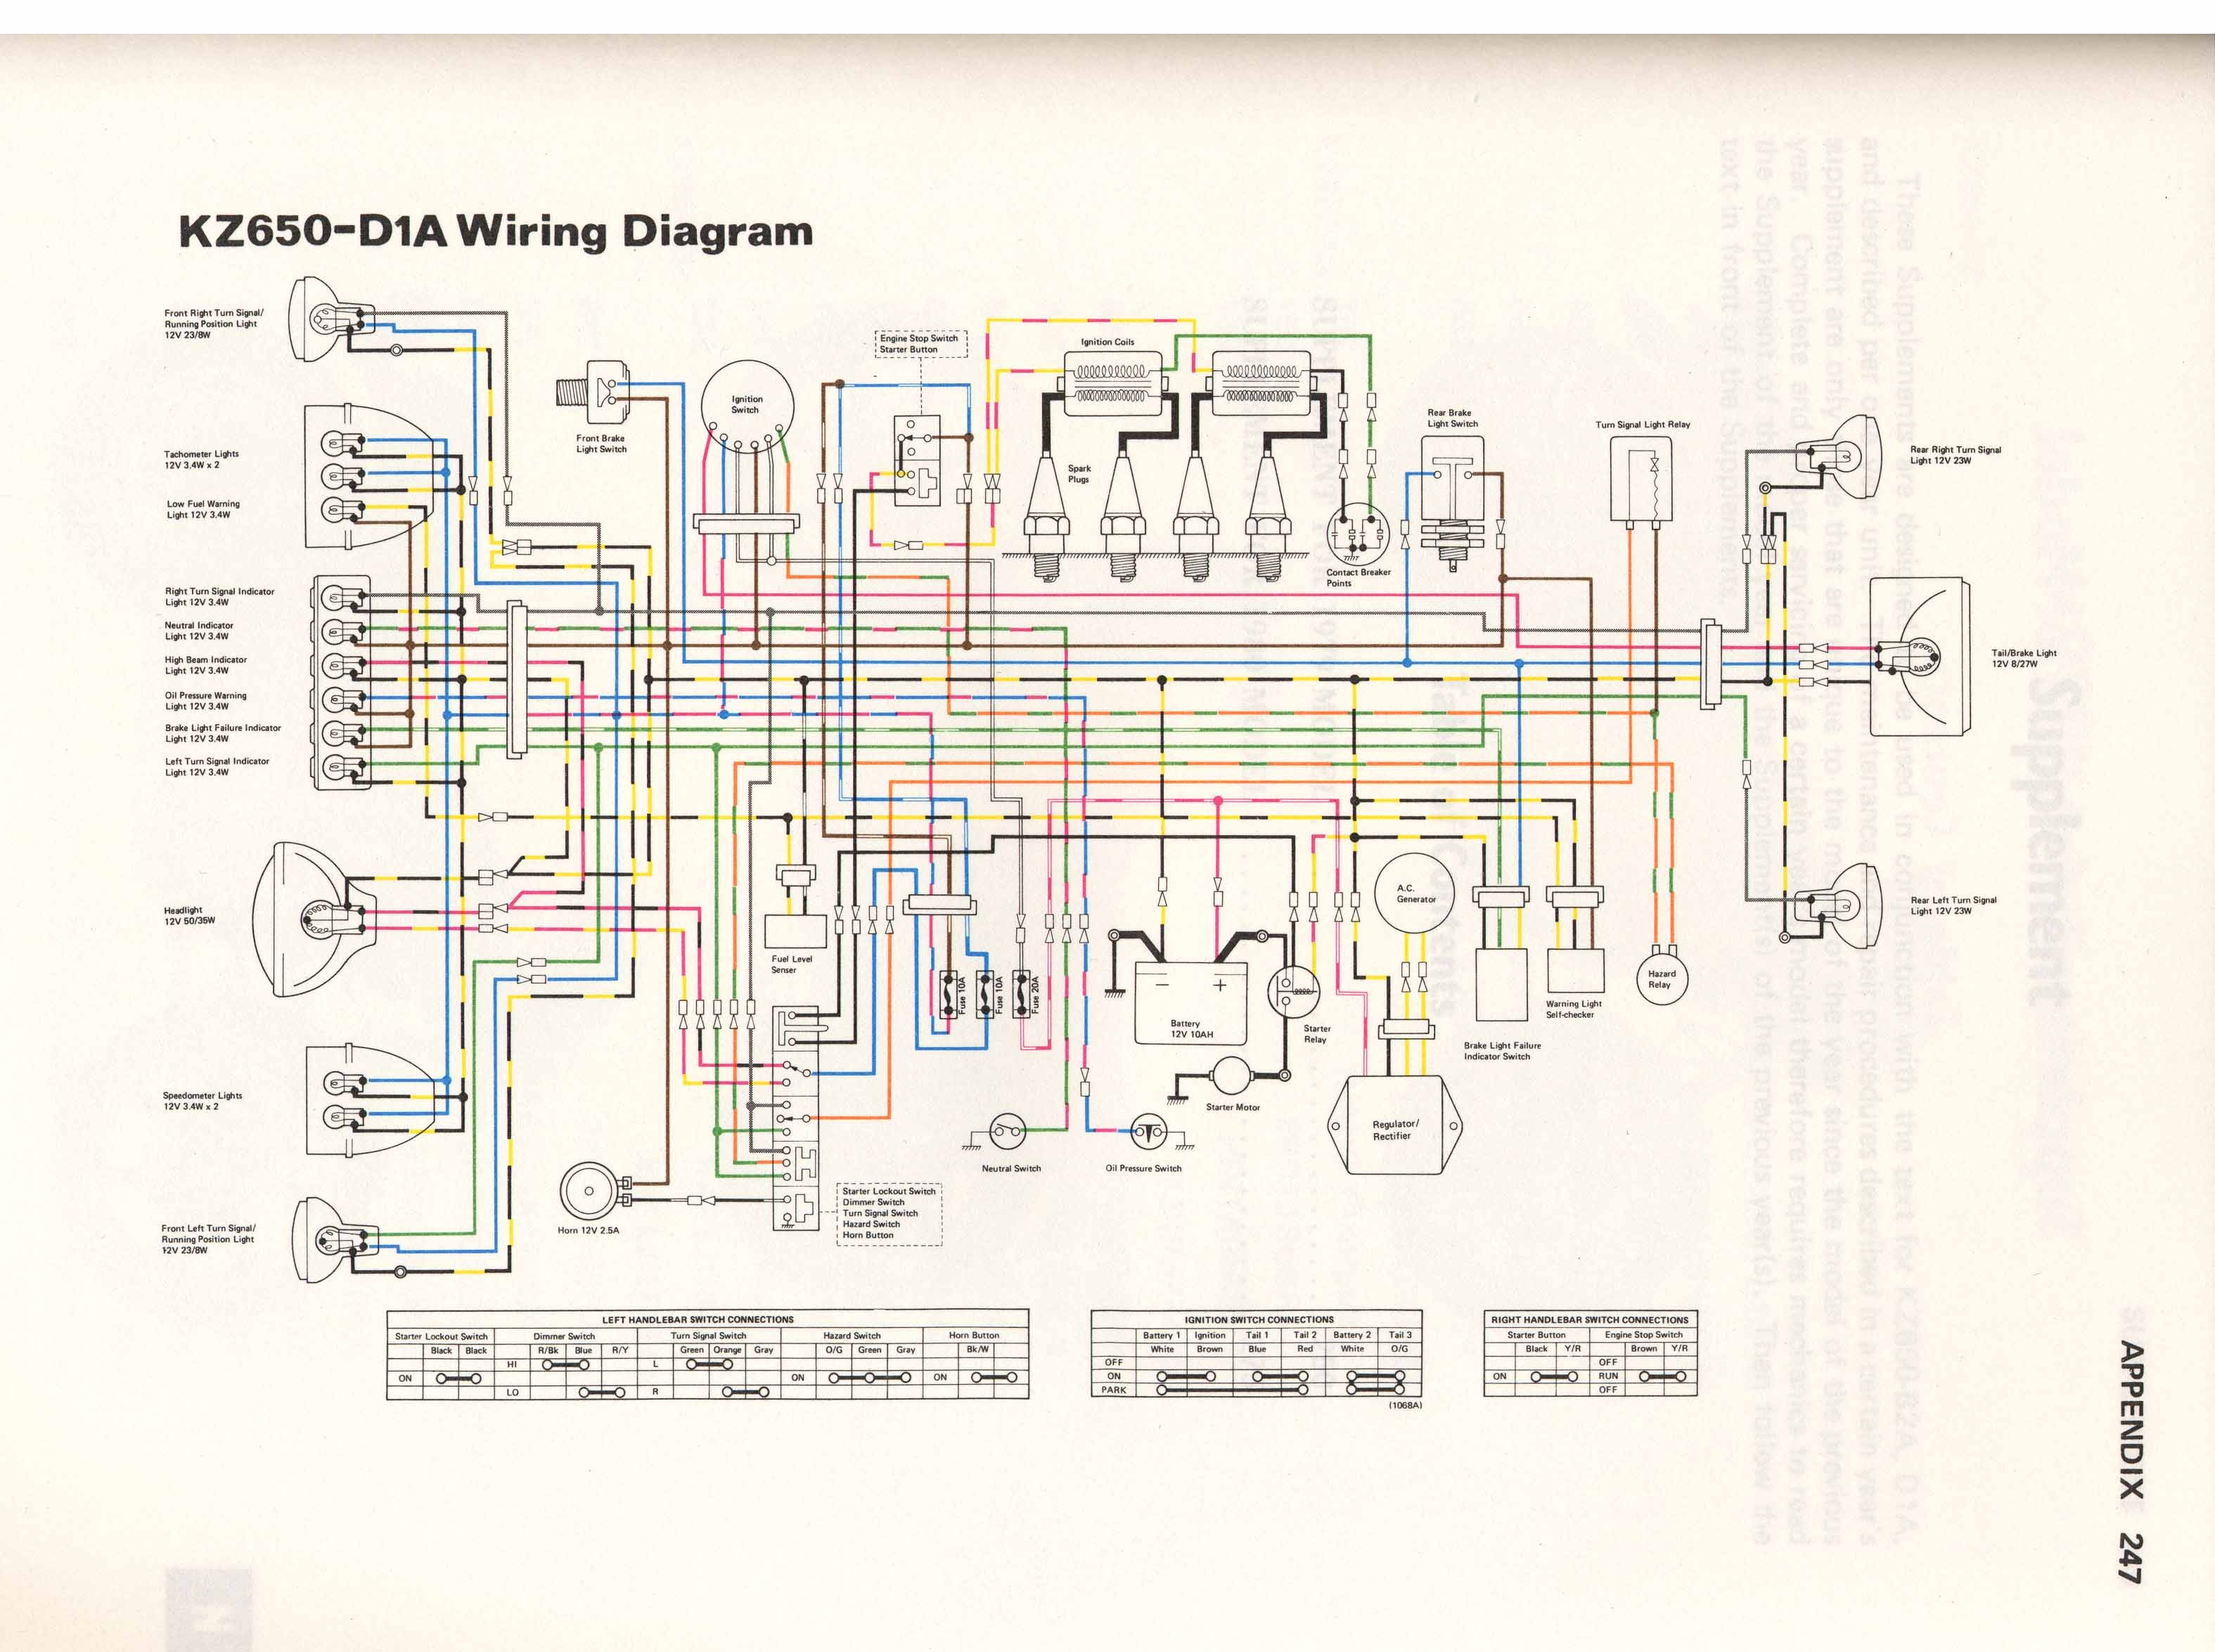 Kz550 Wiring Diagram Simple Guide About 1982 Gpz 750 Schematic 82 Kz1000 Schematics Rh Thyl Co Uk Kawasaki